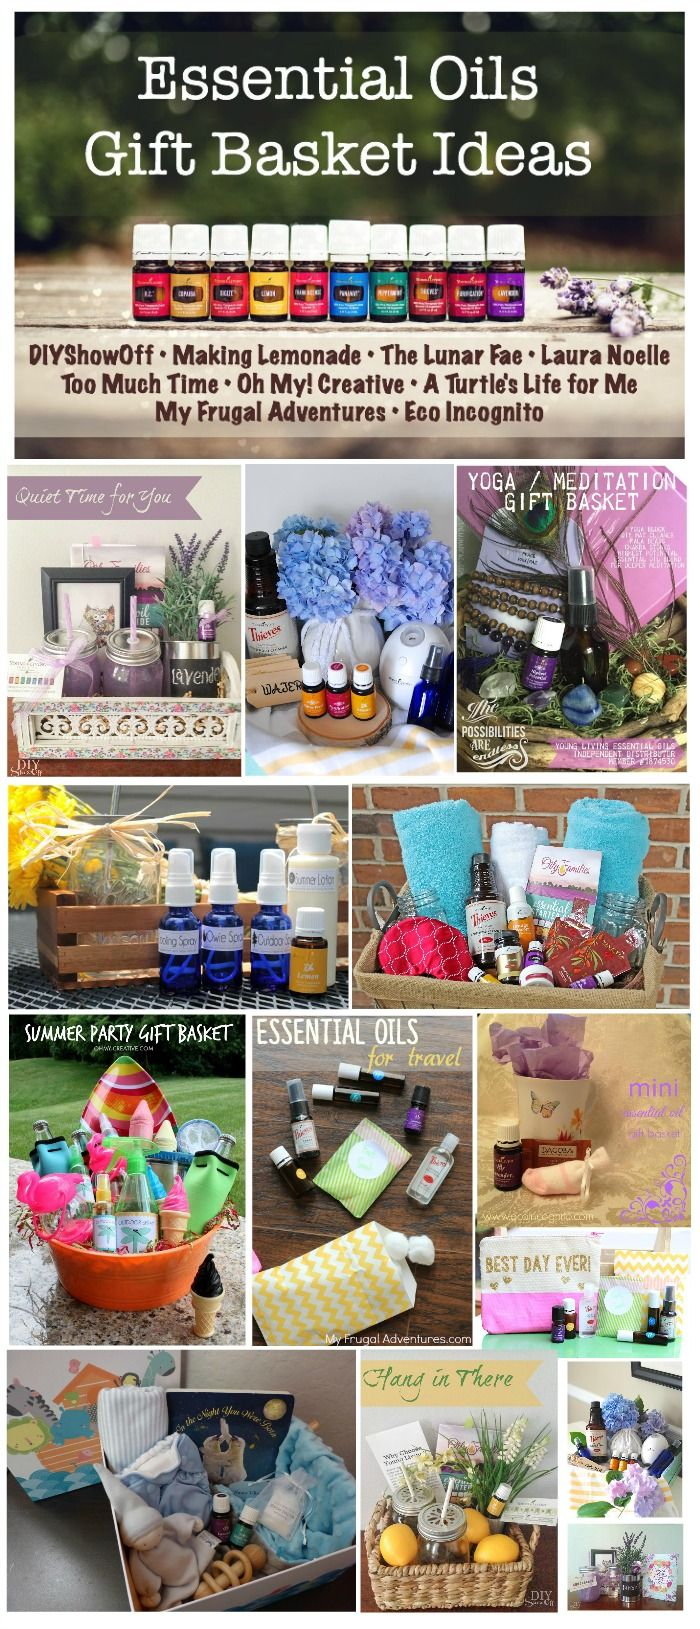 Essential Oils Gift Basket Blog Hop! Beautiful and frugal ideas for oily gifts, perfectly packaged.